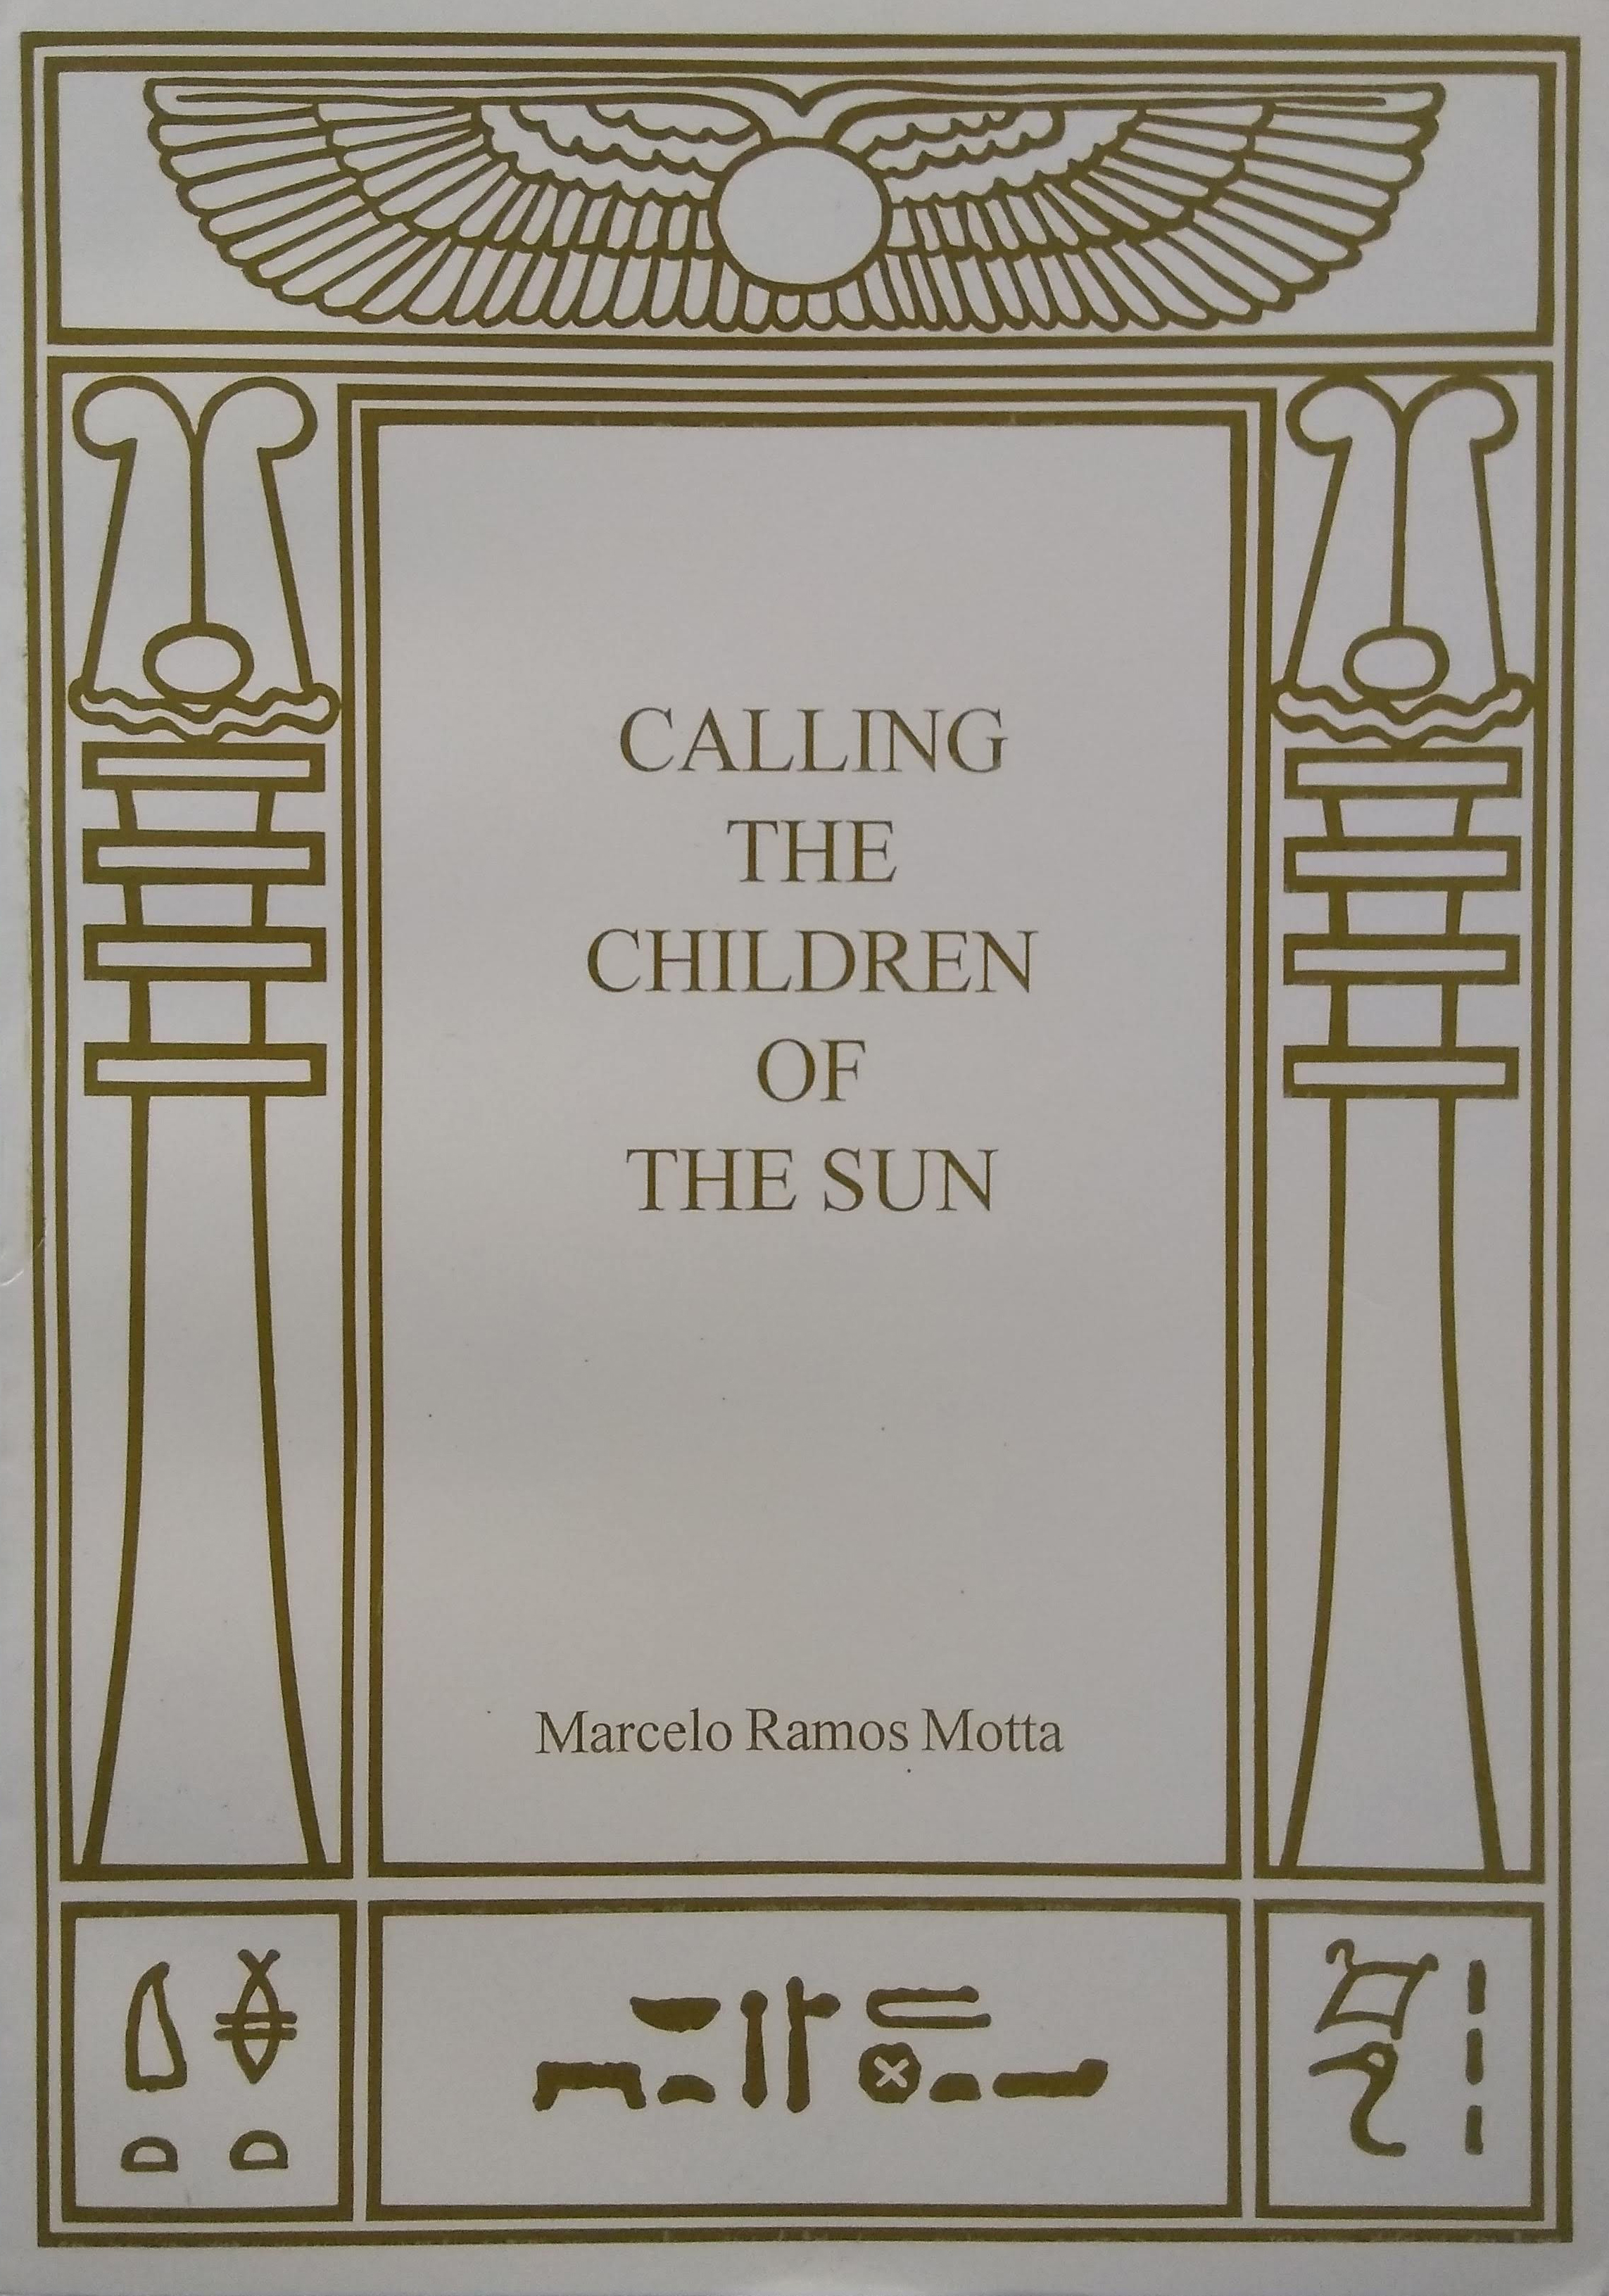 Calling the Children of the Sun